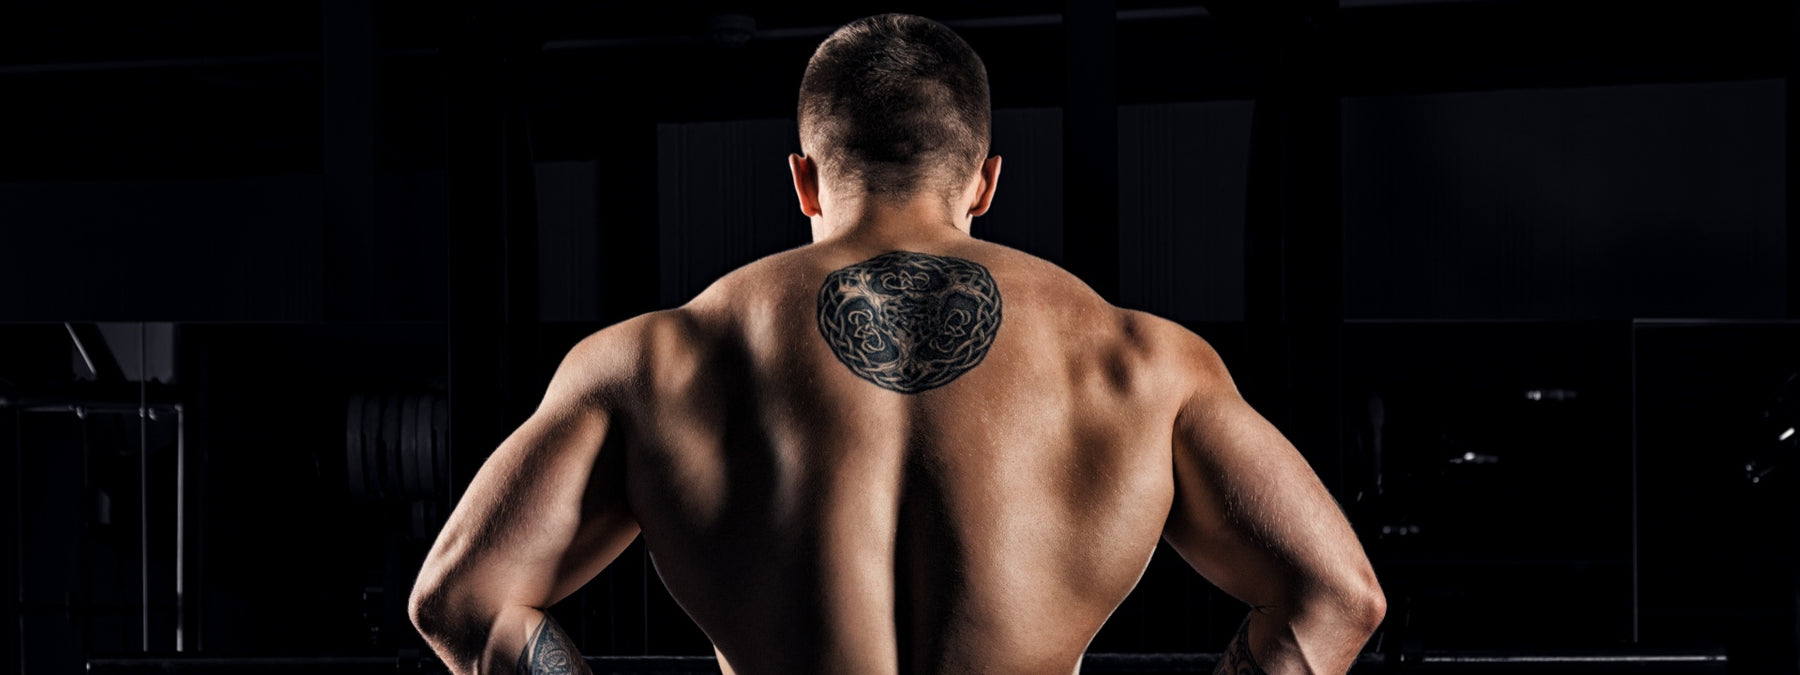 Rhomboid Exercises Finisher for Any Back Workout - Diamond Back Annihilation